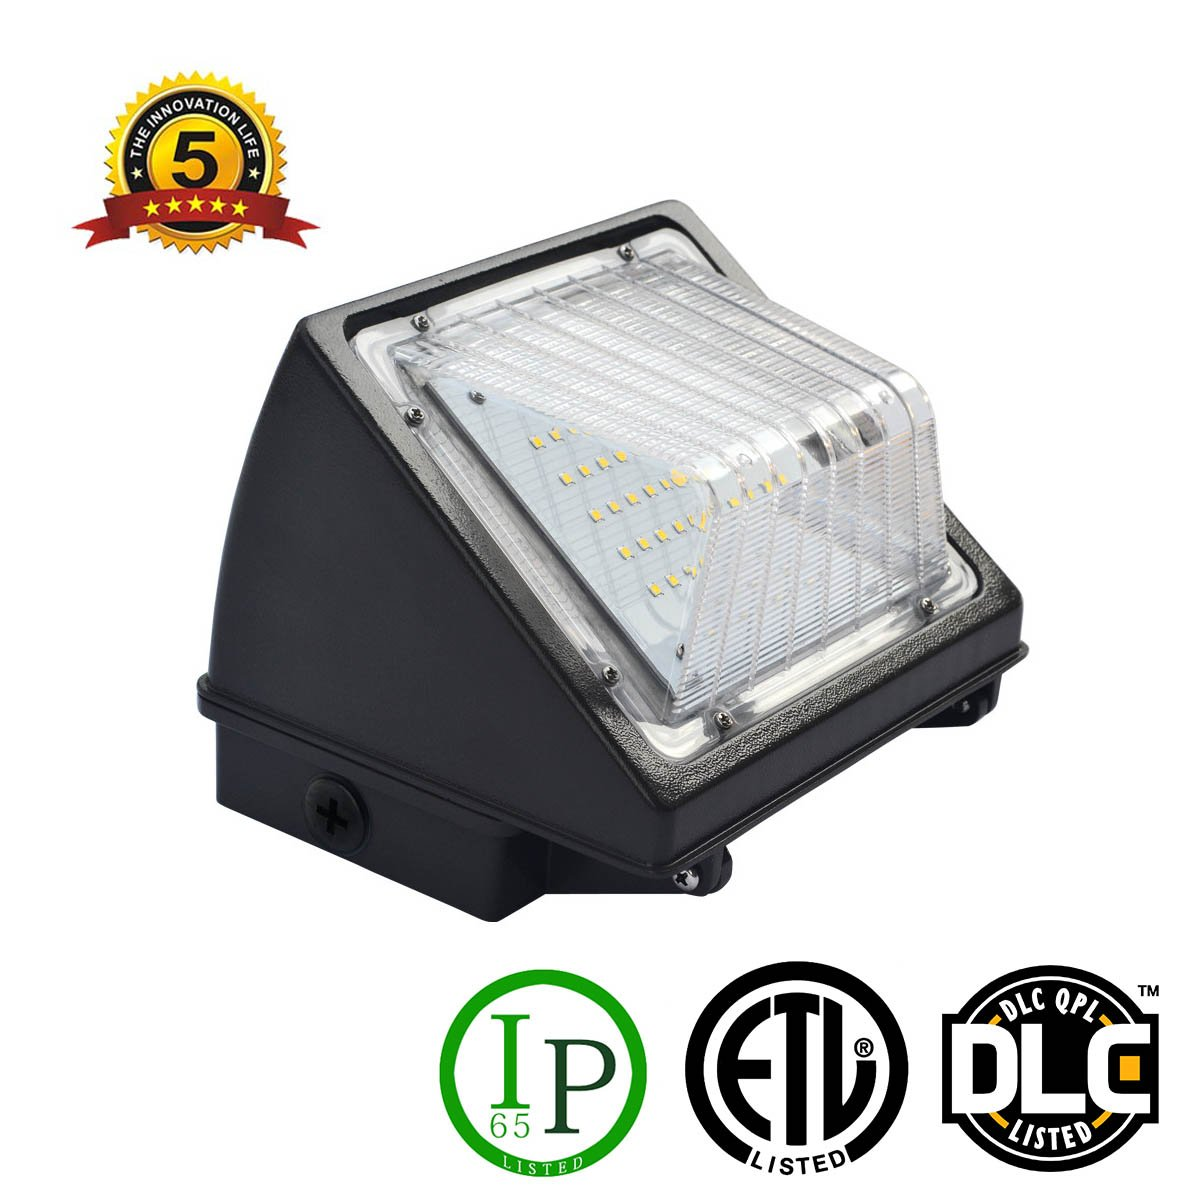 CPLED Light 90w Outdoor 9900Lumen Wall Lamp Super Bright/Energy Saving/Heat Dissipation/Waterproof IP65 for Warehouse Street Courtyard Sport Court Highway External Wall Industrial LED Wall Light by CPLED